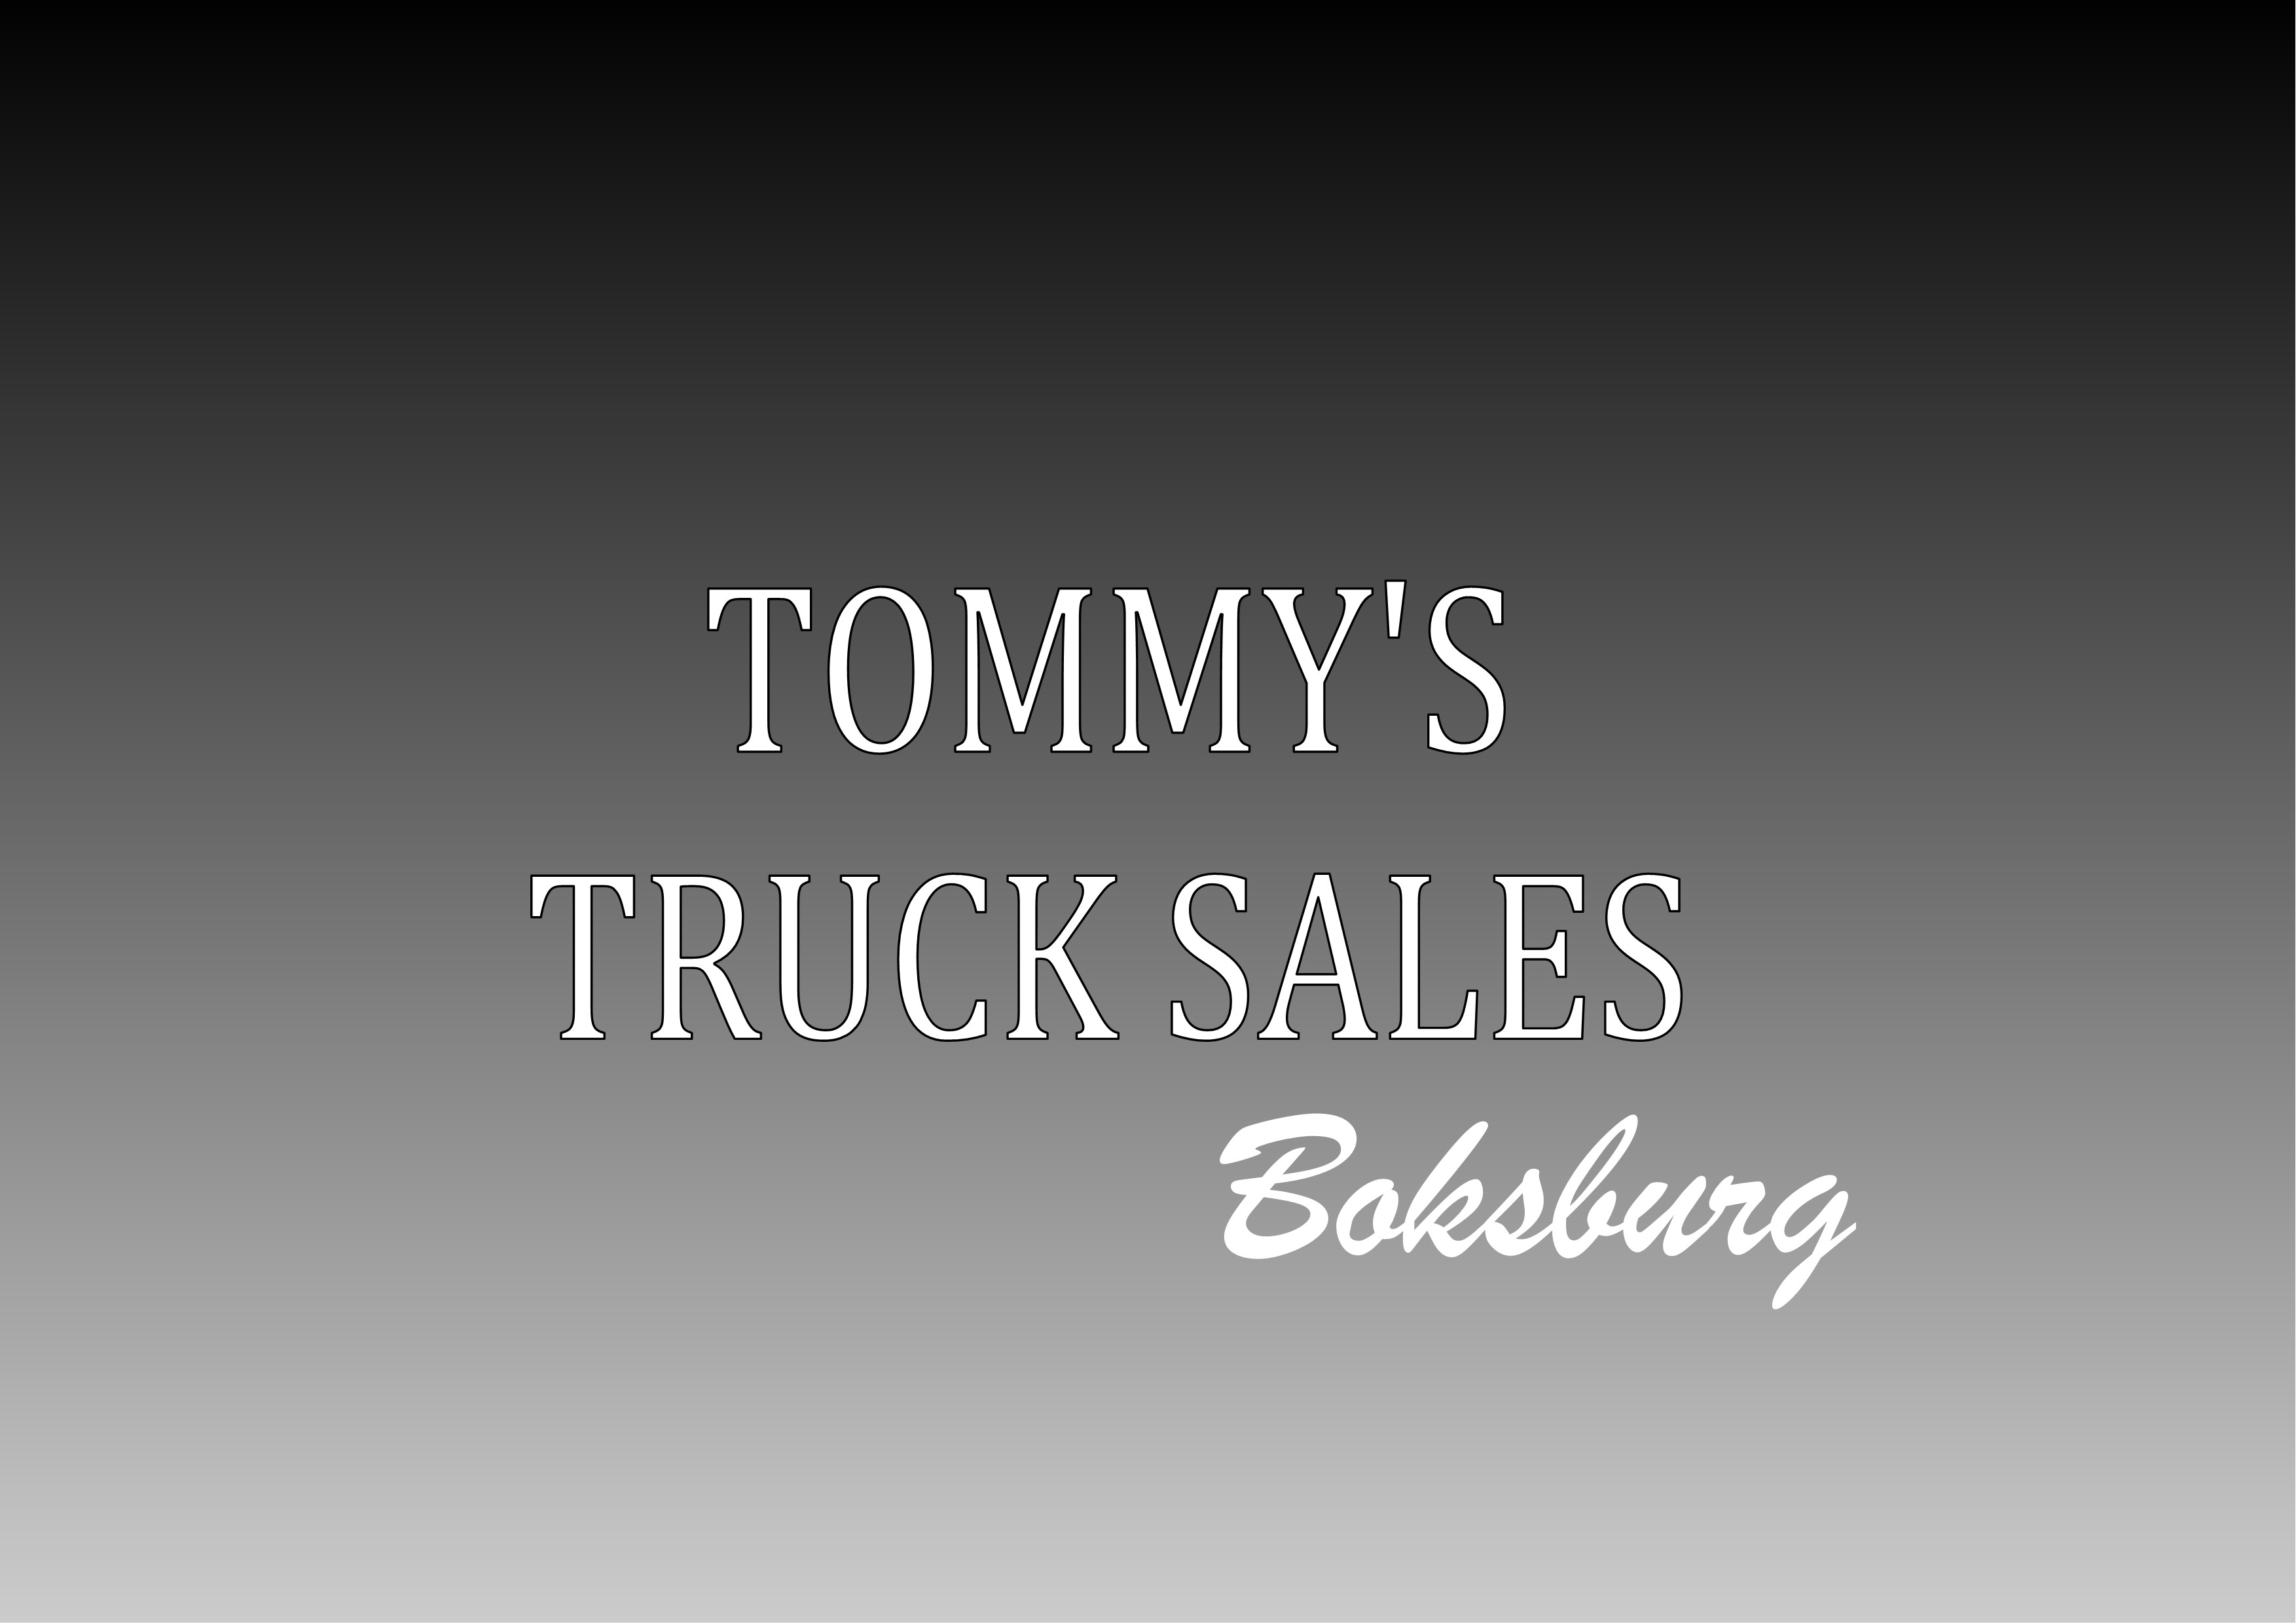 Find NN Truck and Trailer's adverts listed on Junk Mail